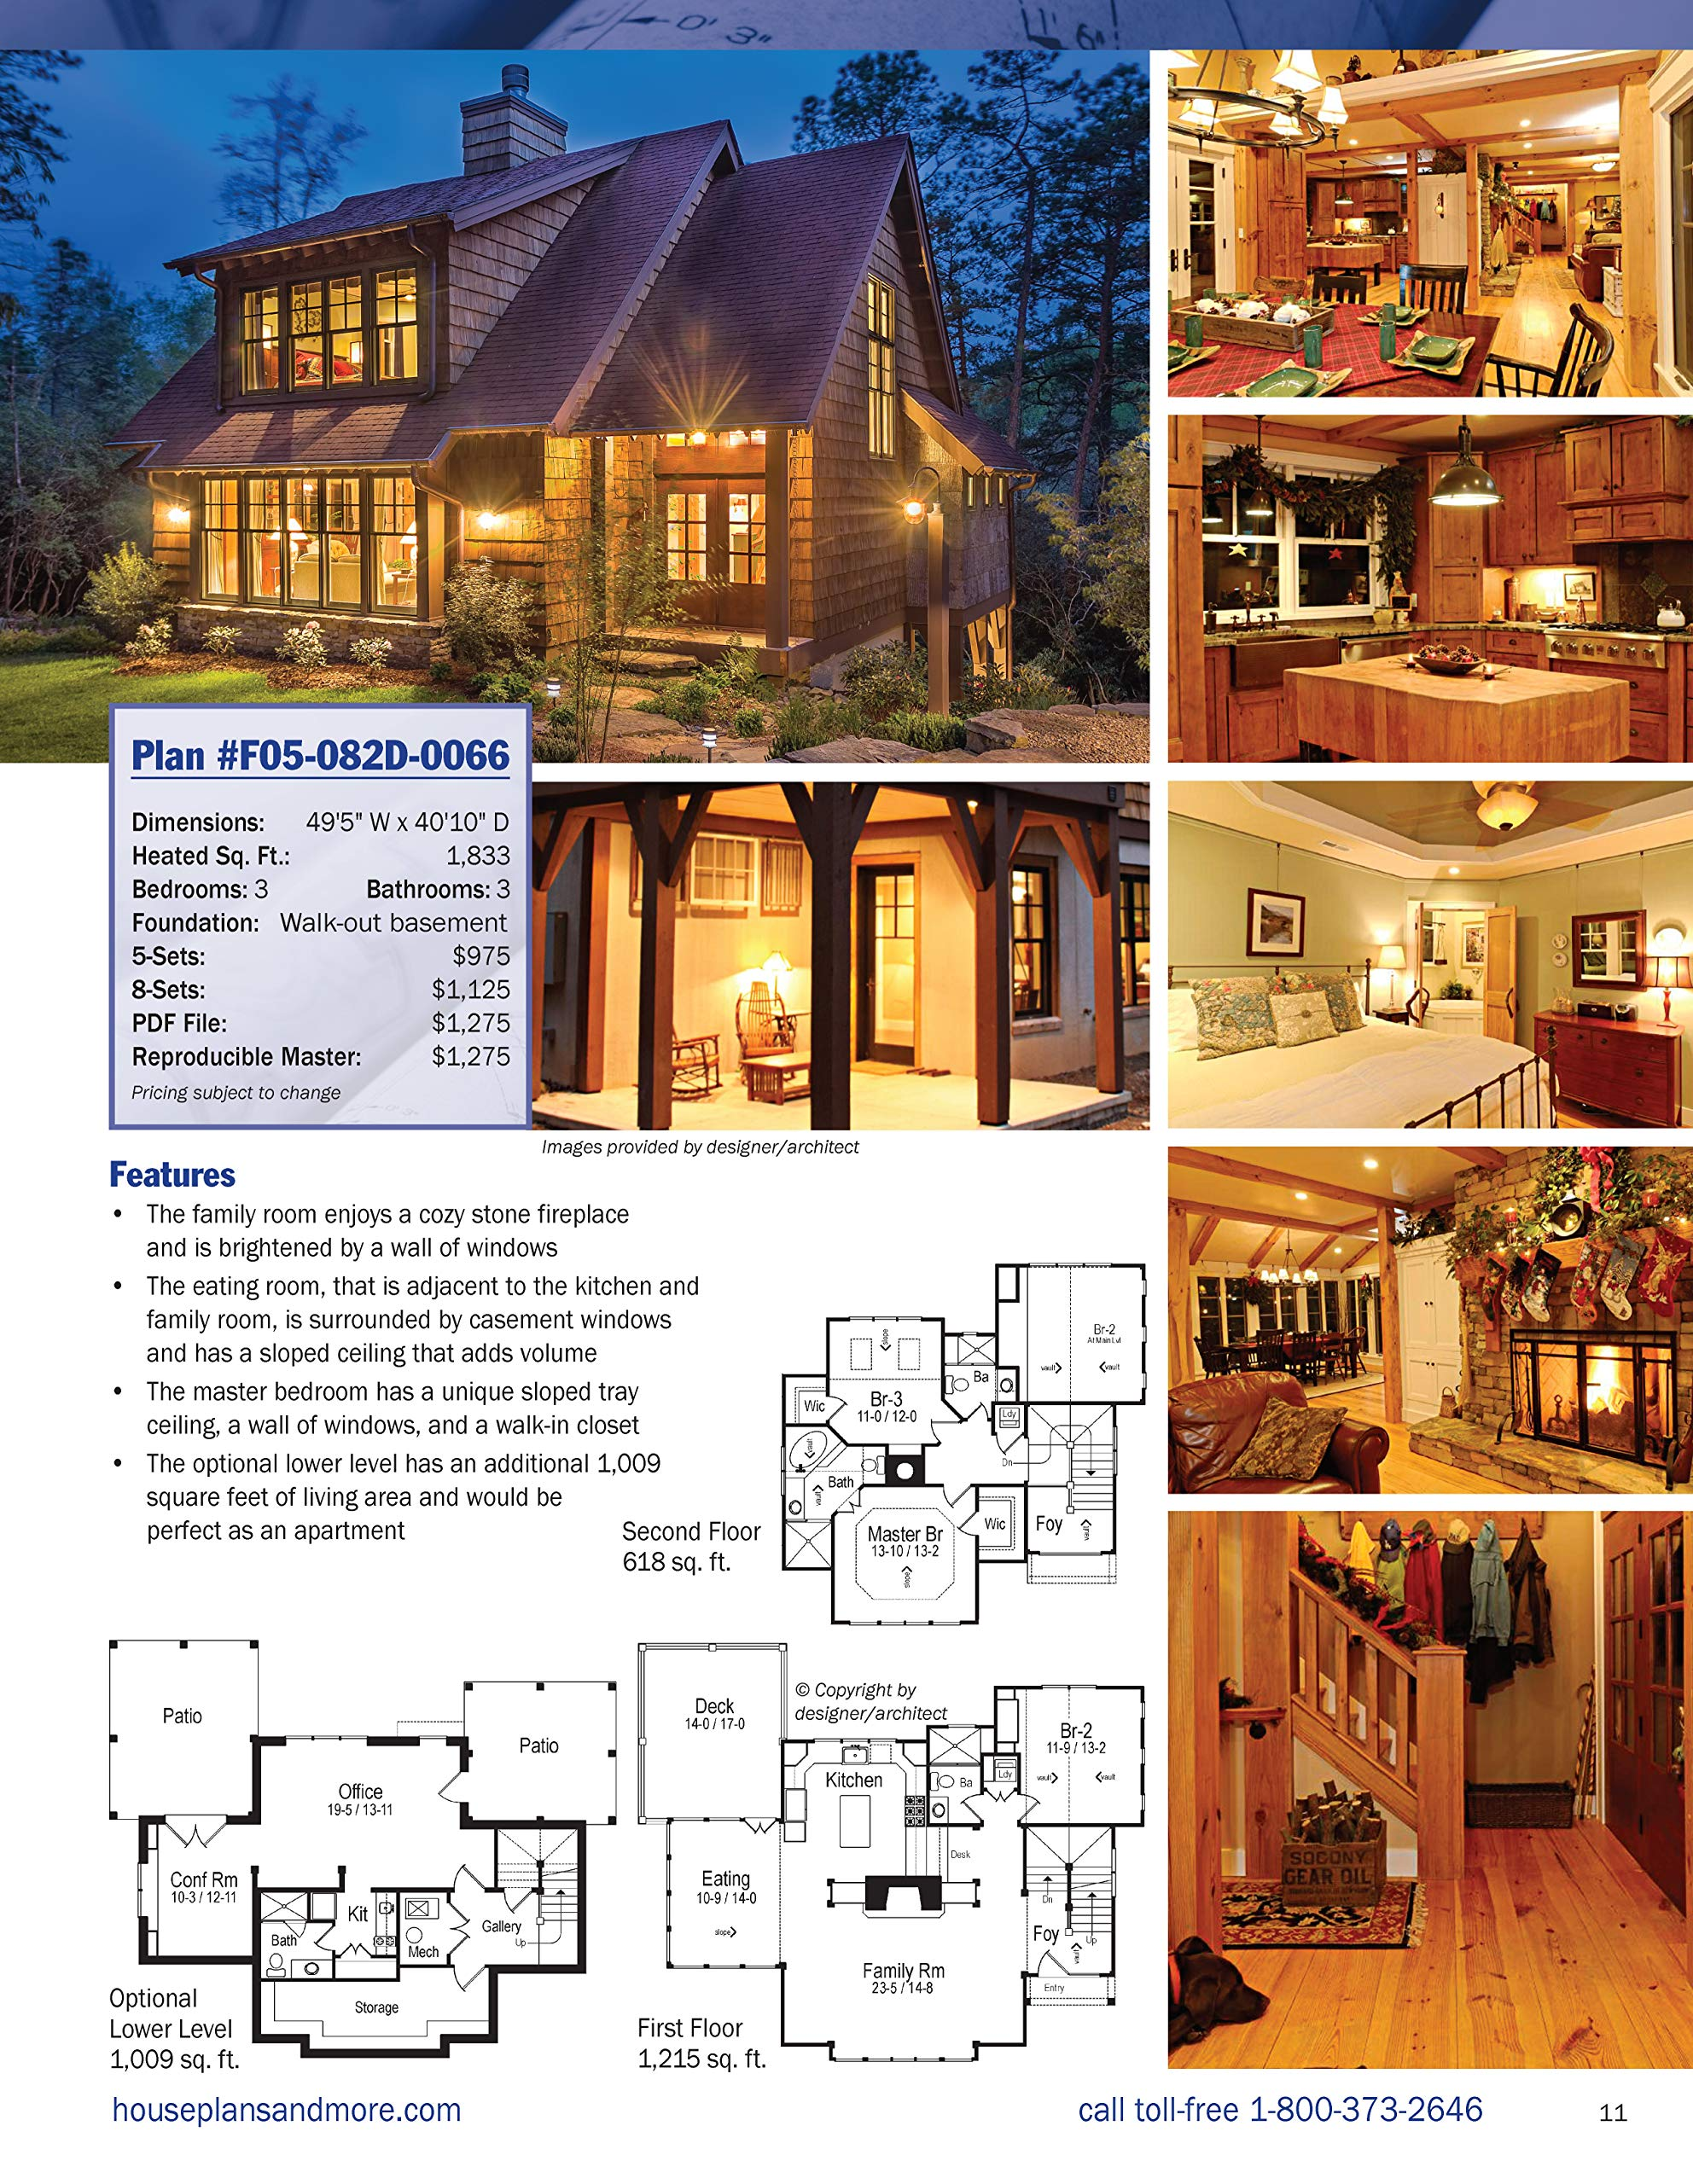 Ultimate Book of Home Plans: 780 Home Plans in Full Color ... on narrow house elevations, narrow modern house, framing plans, narrow doors, narrow lot house, narrow sink, small lake lot plans, narrow house interior design, narrow art, narrow house layout, narrow beach house, narrow garden, narrow yard landscaping ideas, narrow house roof, narrow cabinets, narrow bedroom, narrow home, narrow 3 story house, narrow kitchens, narrow windows,